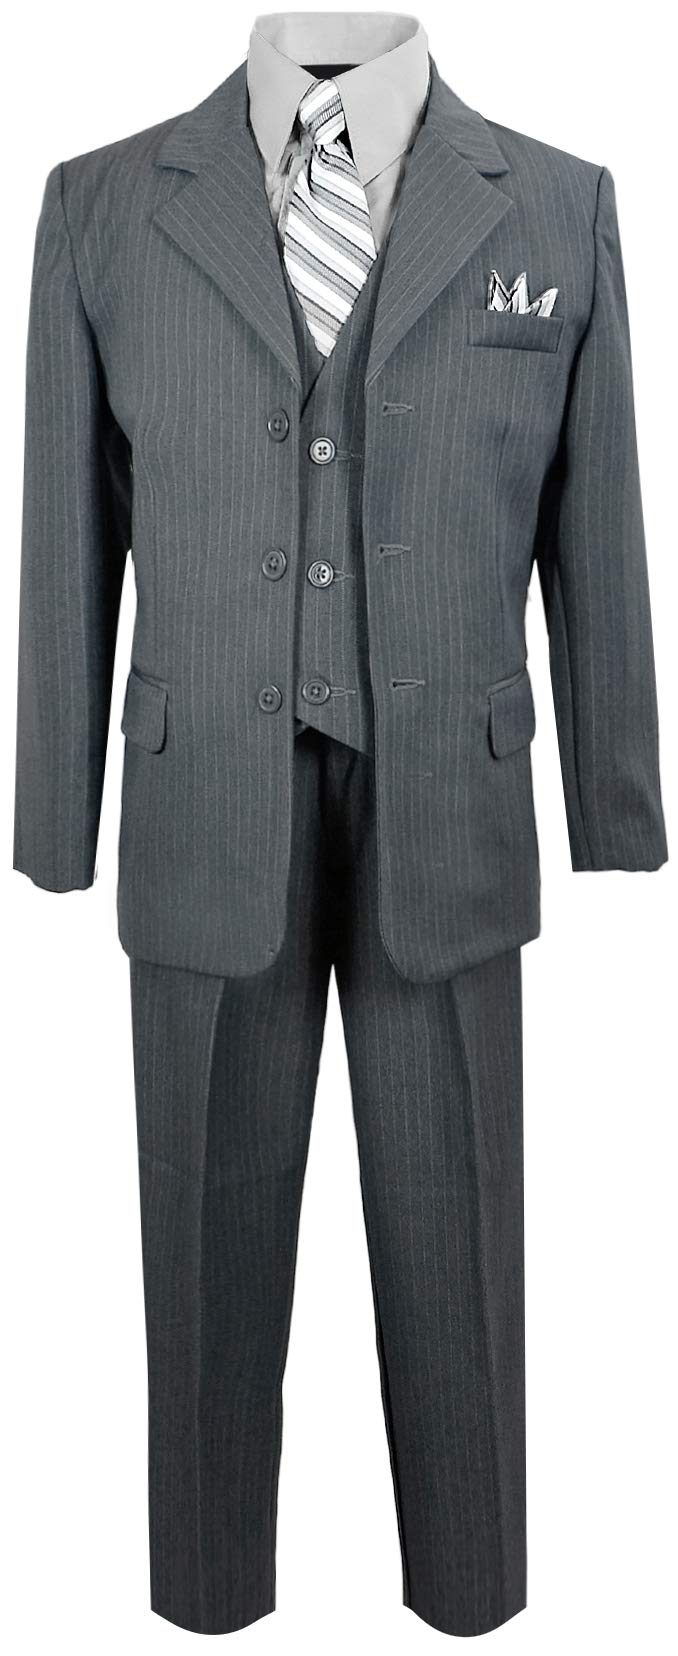 Boys Pinstripe Suit in Grey with Matching Tie Size 20